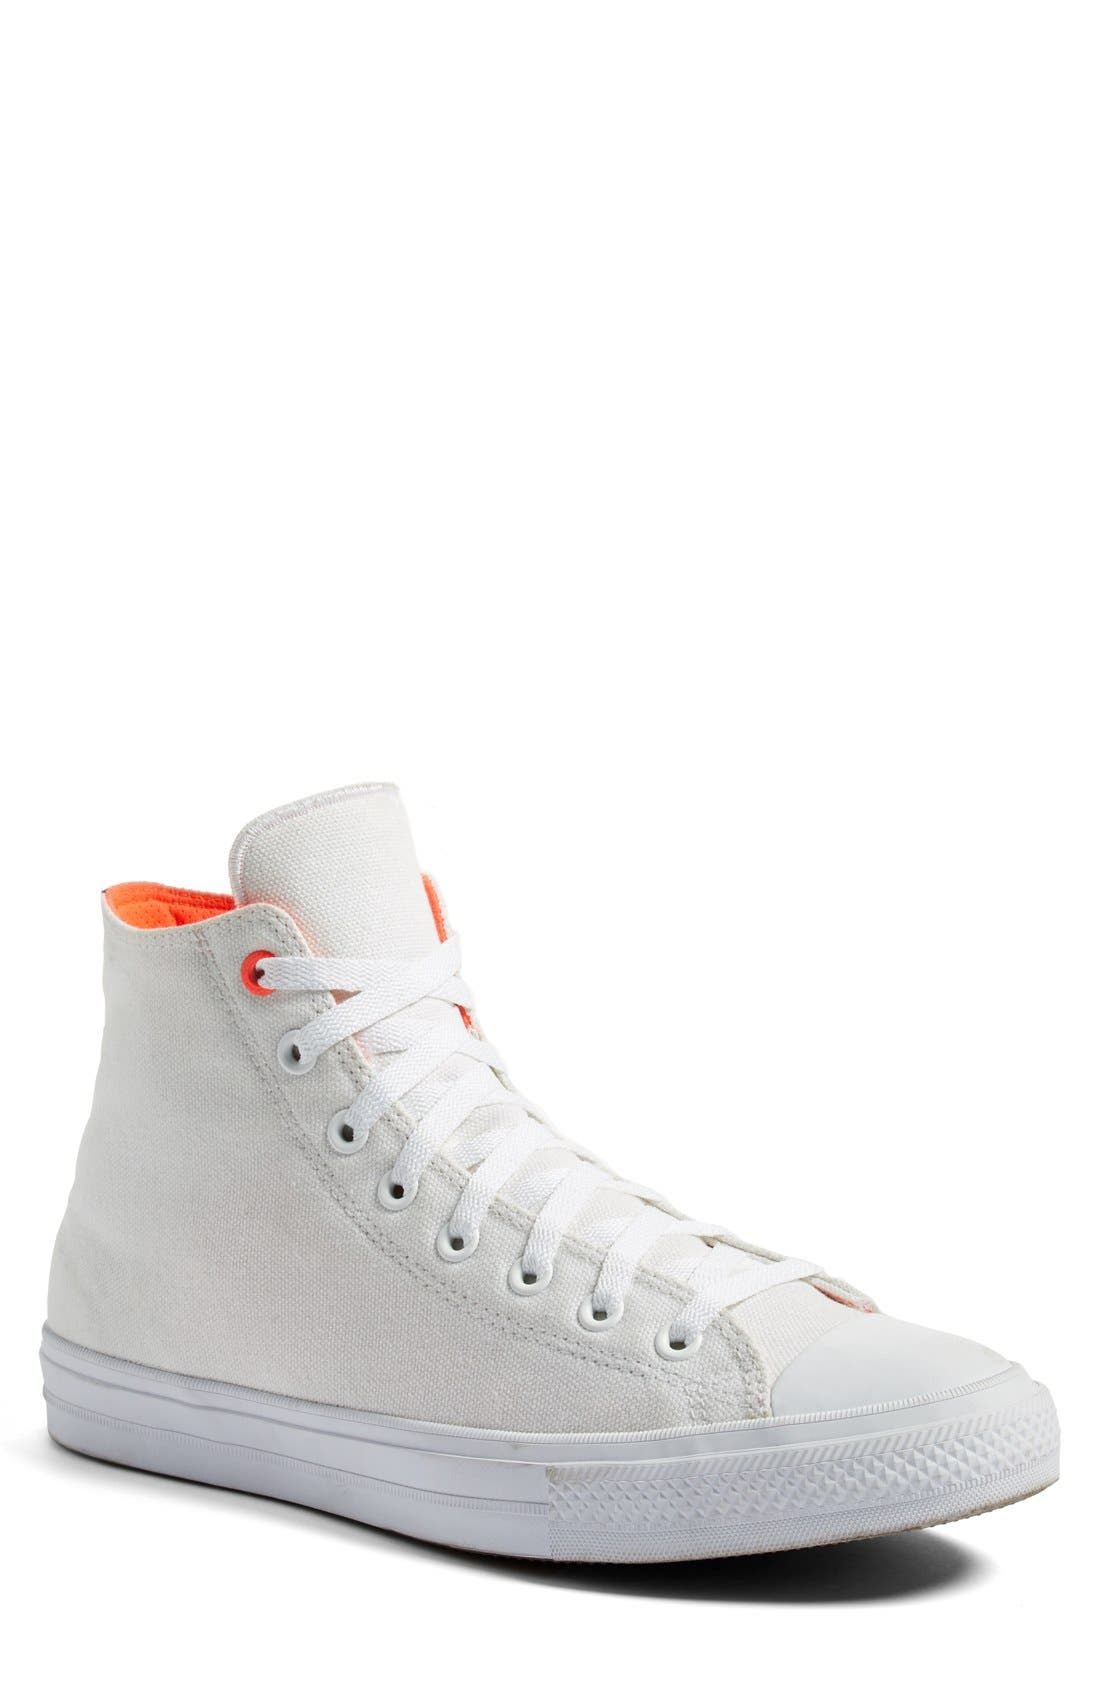 Chuck Taylor<sup>®</sup> All Star<sup>®</sup> II 'Shield' Water Repellent High Top Sneaker,                         Main,                         color, White/ Lava/ Gum